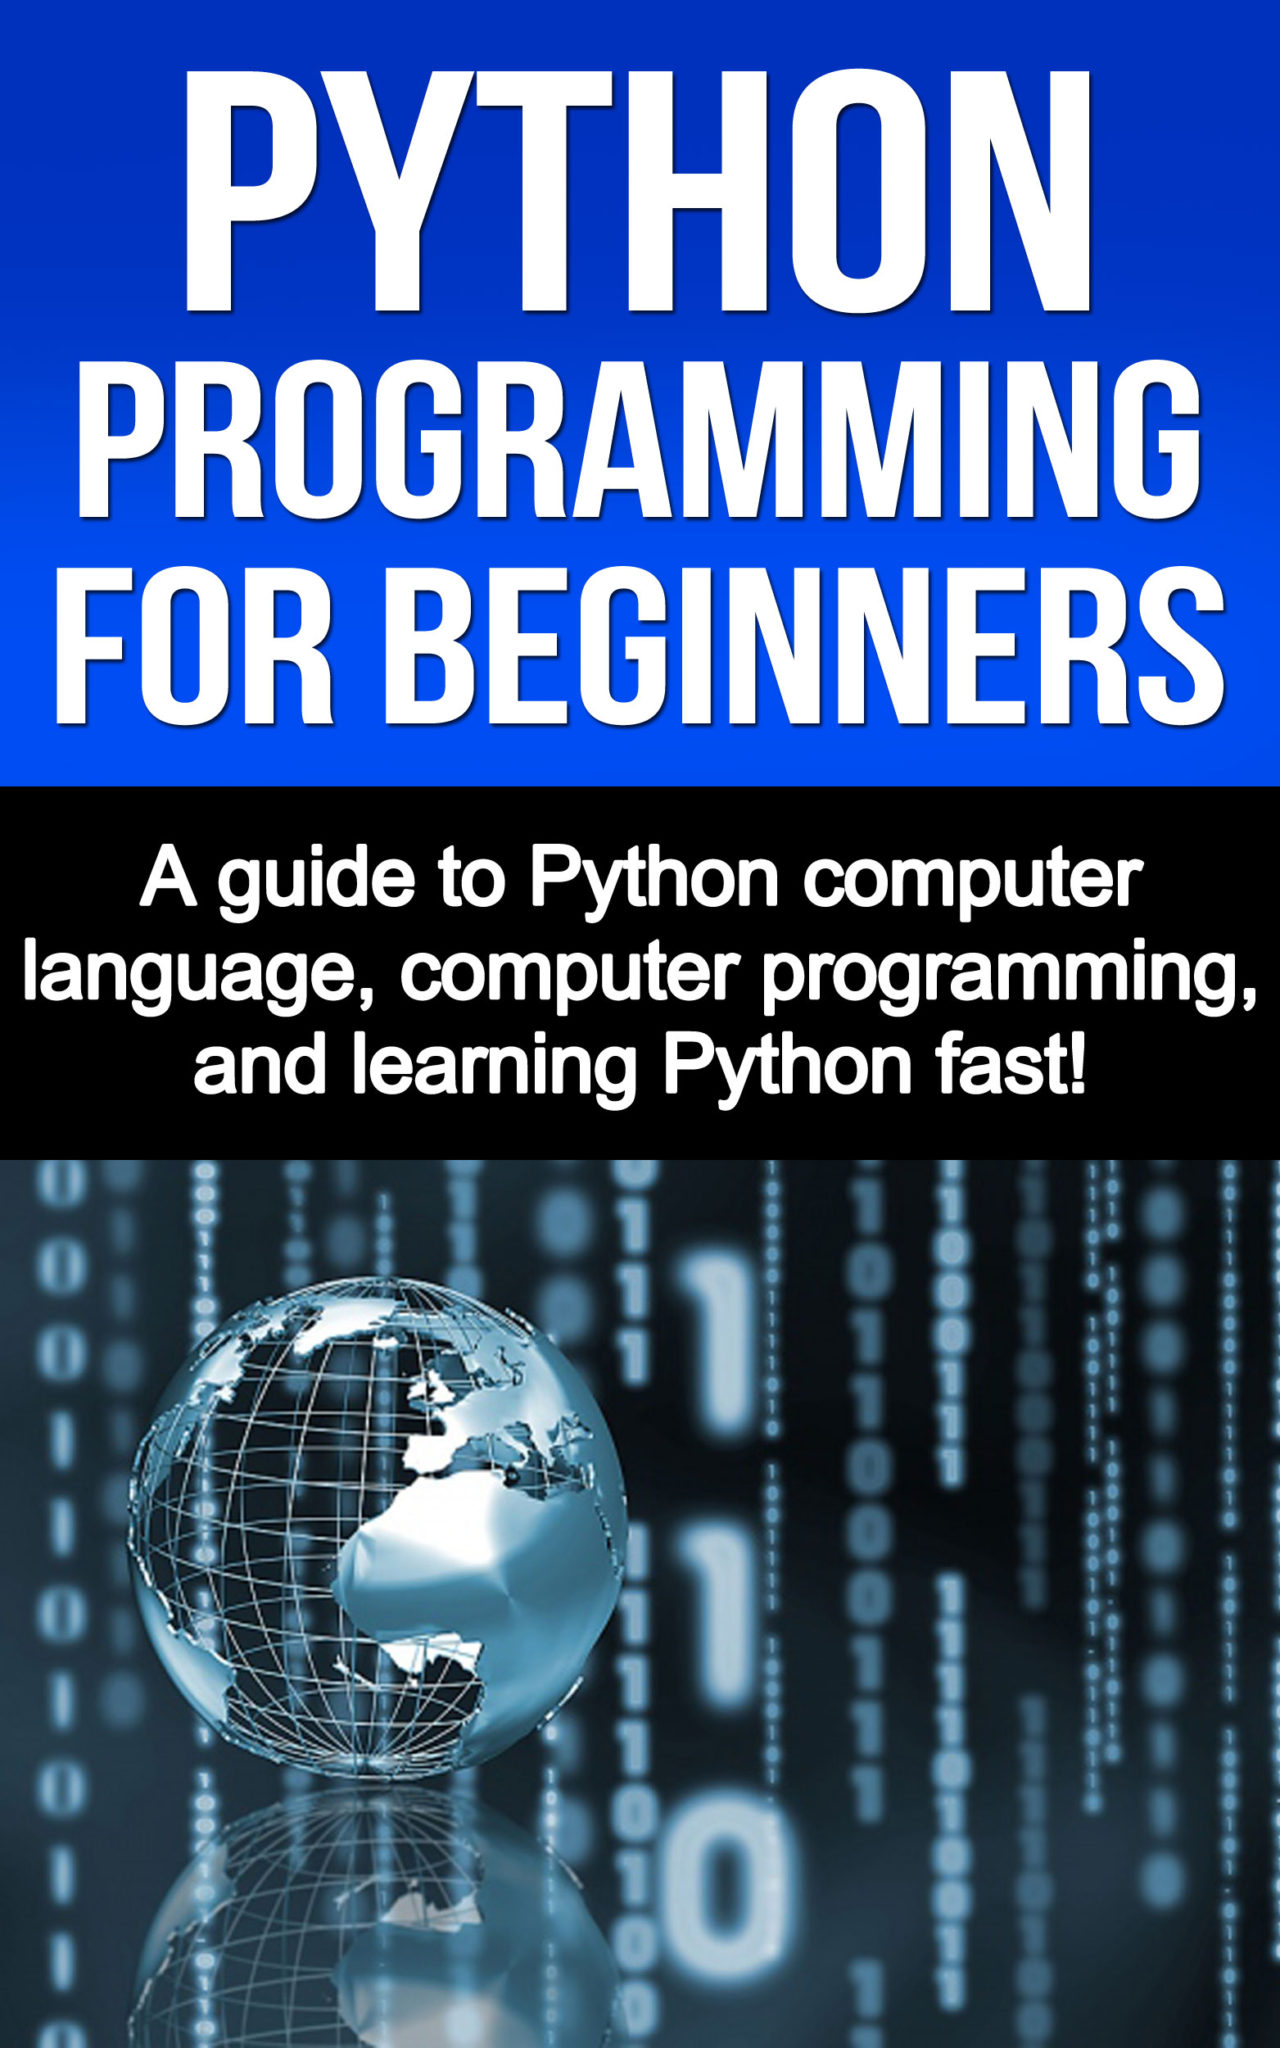 Today is a Good Day to Learn Python | Linux.com | The ...